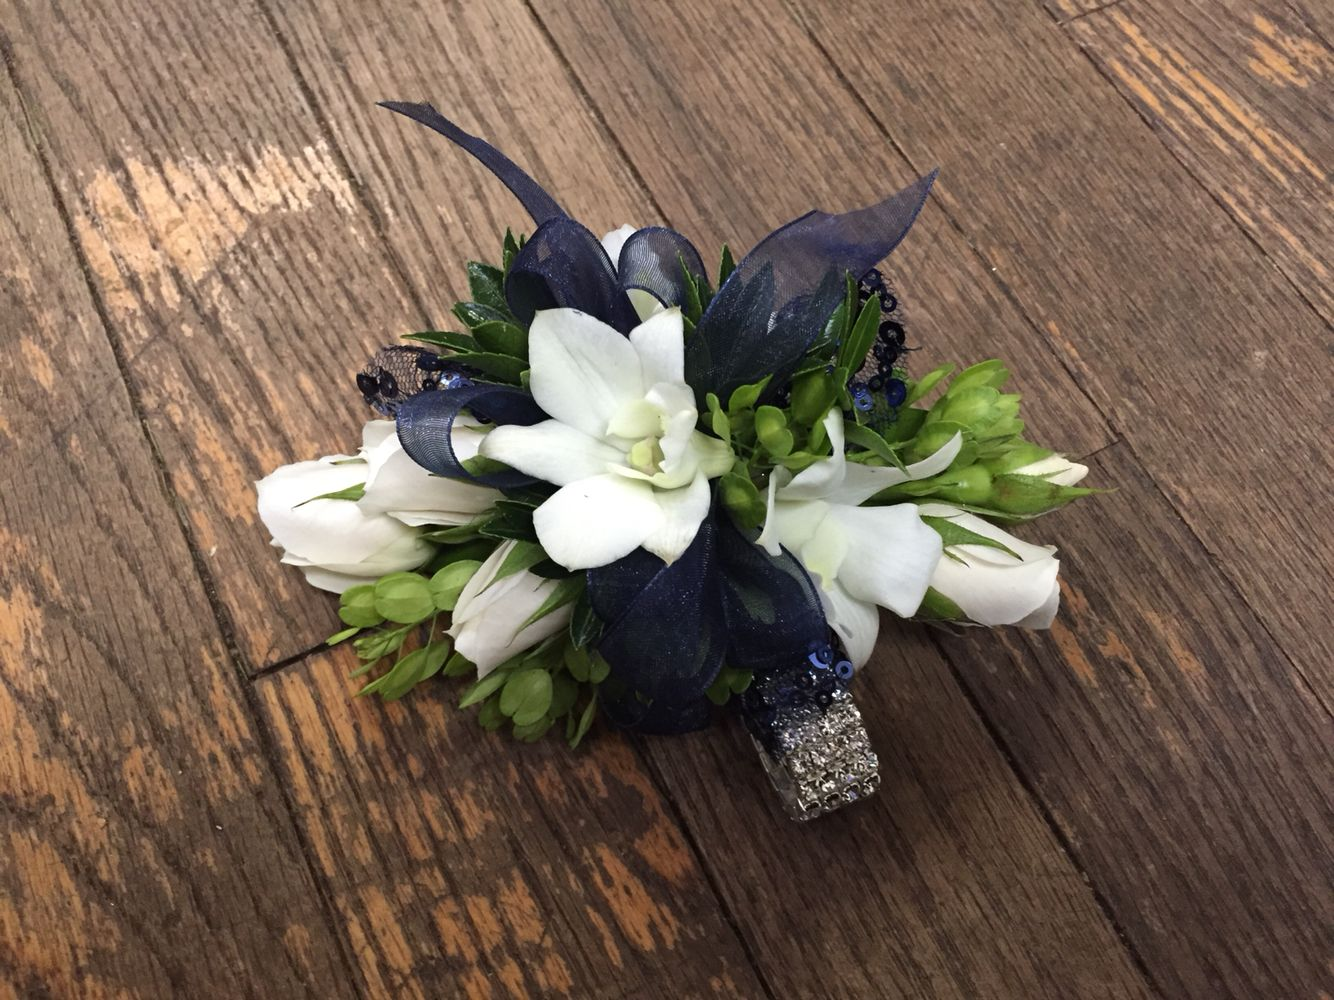 Navy blue and white prom corsage with roses and dendrobium orchids